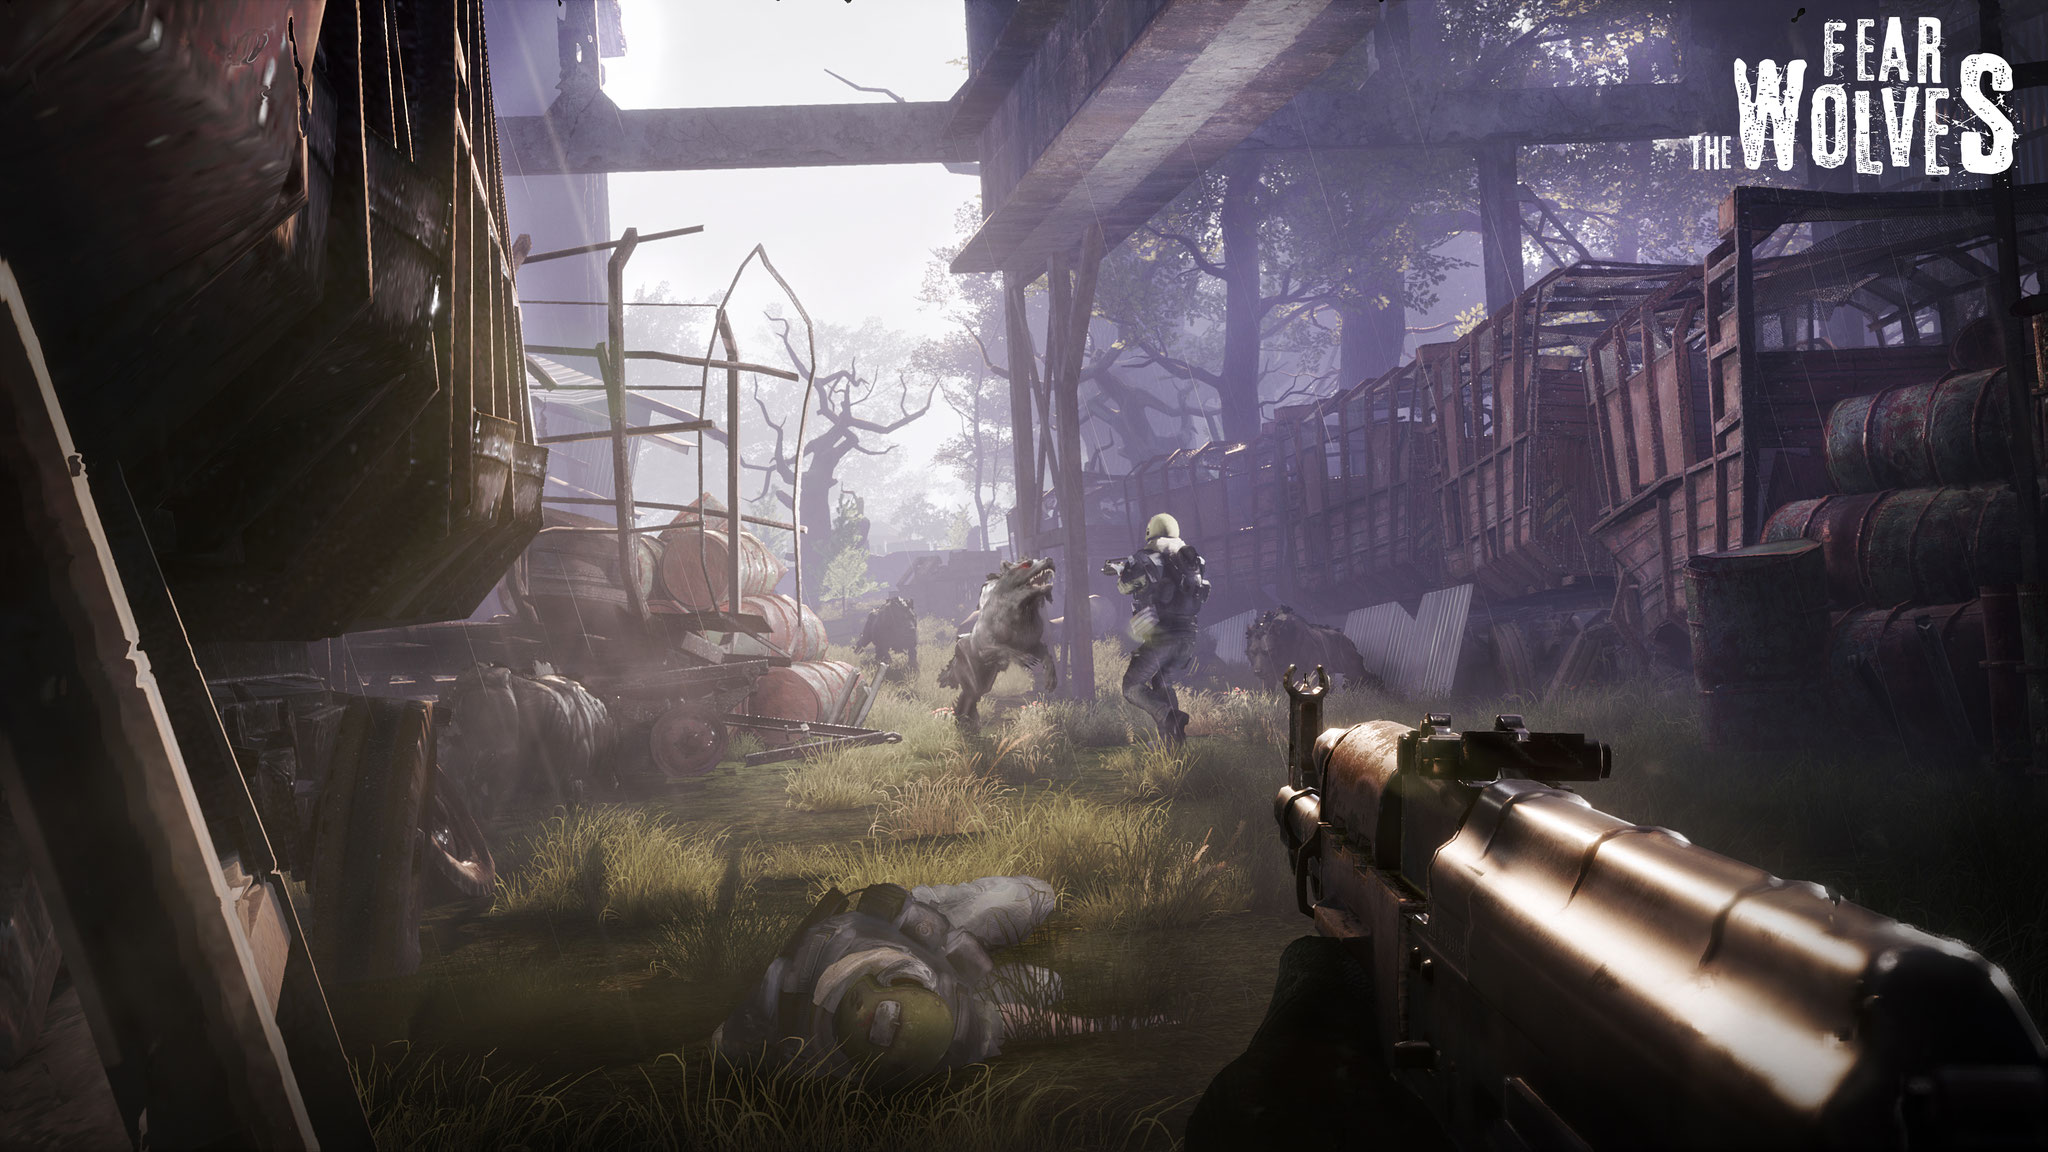 Fear the Wolves Gameplay Screenshots #2 Bild: Focus Home Interactive